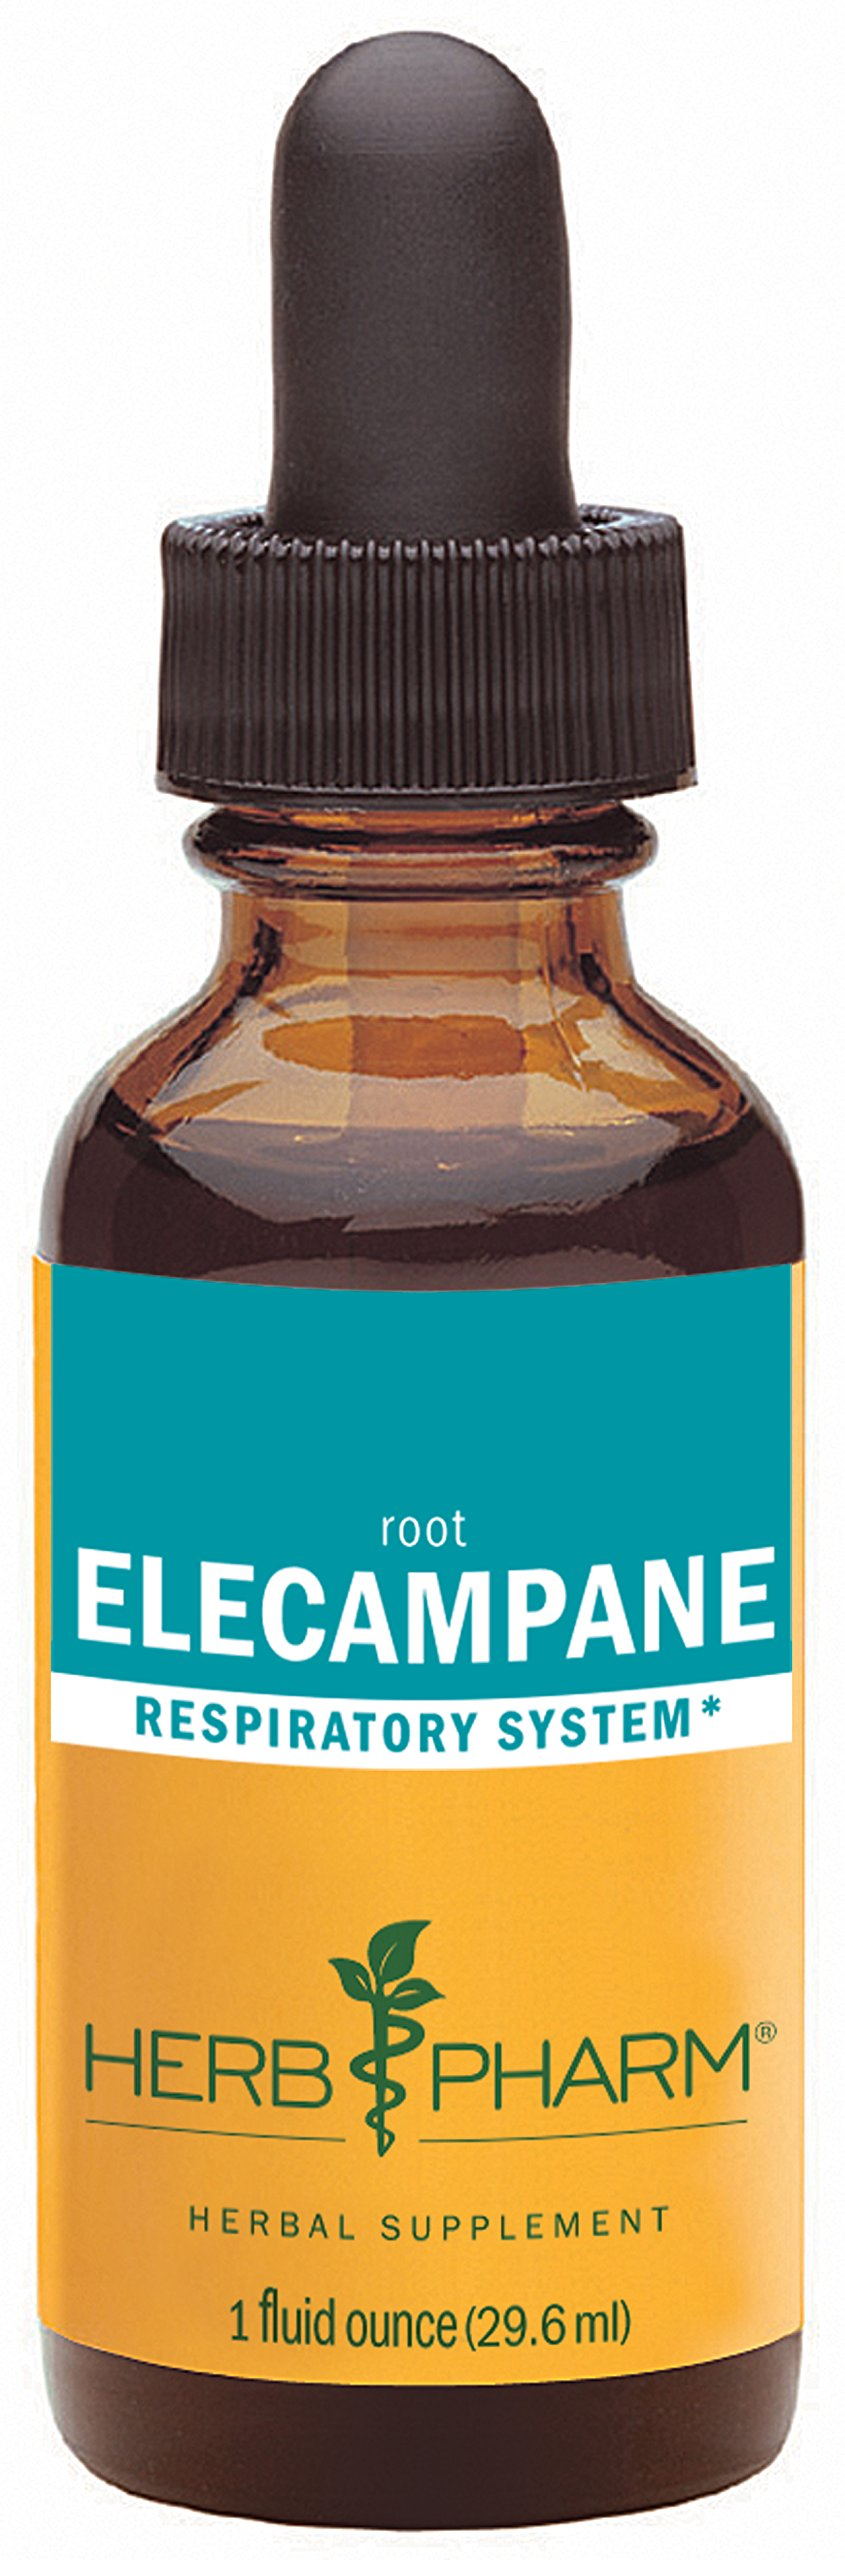 Herb Pharm Certified Organic Elecampane Extract for Respiratory System Support - 1 Ounce